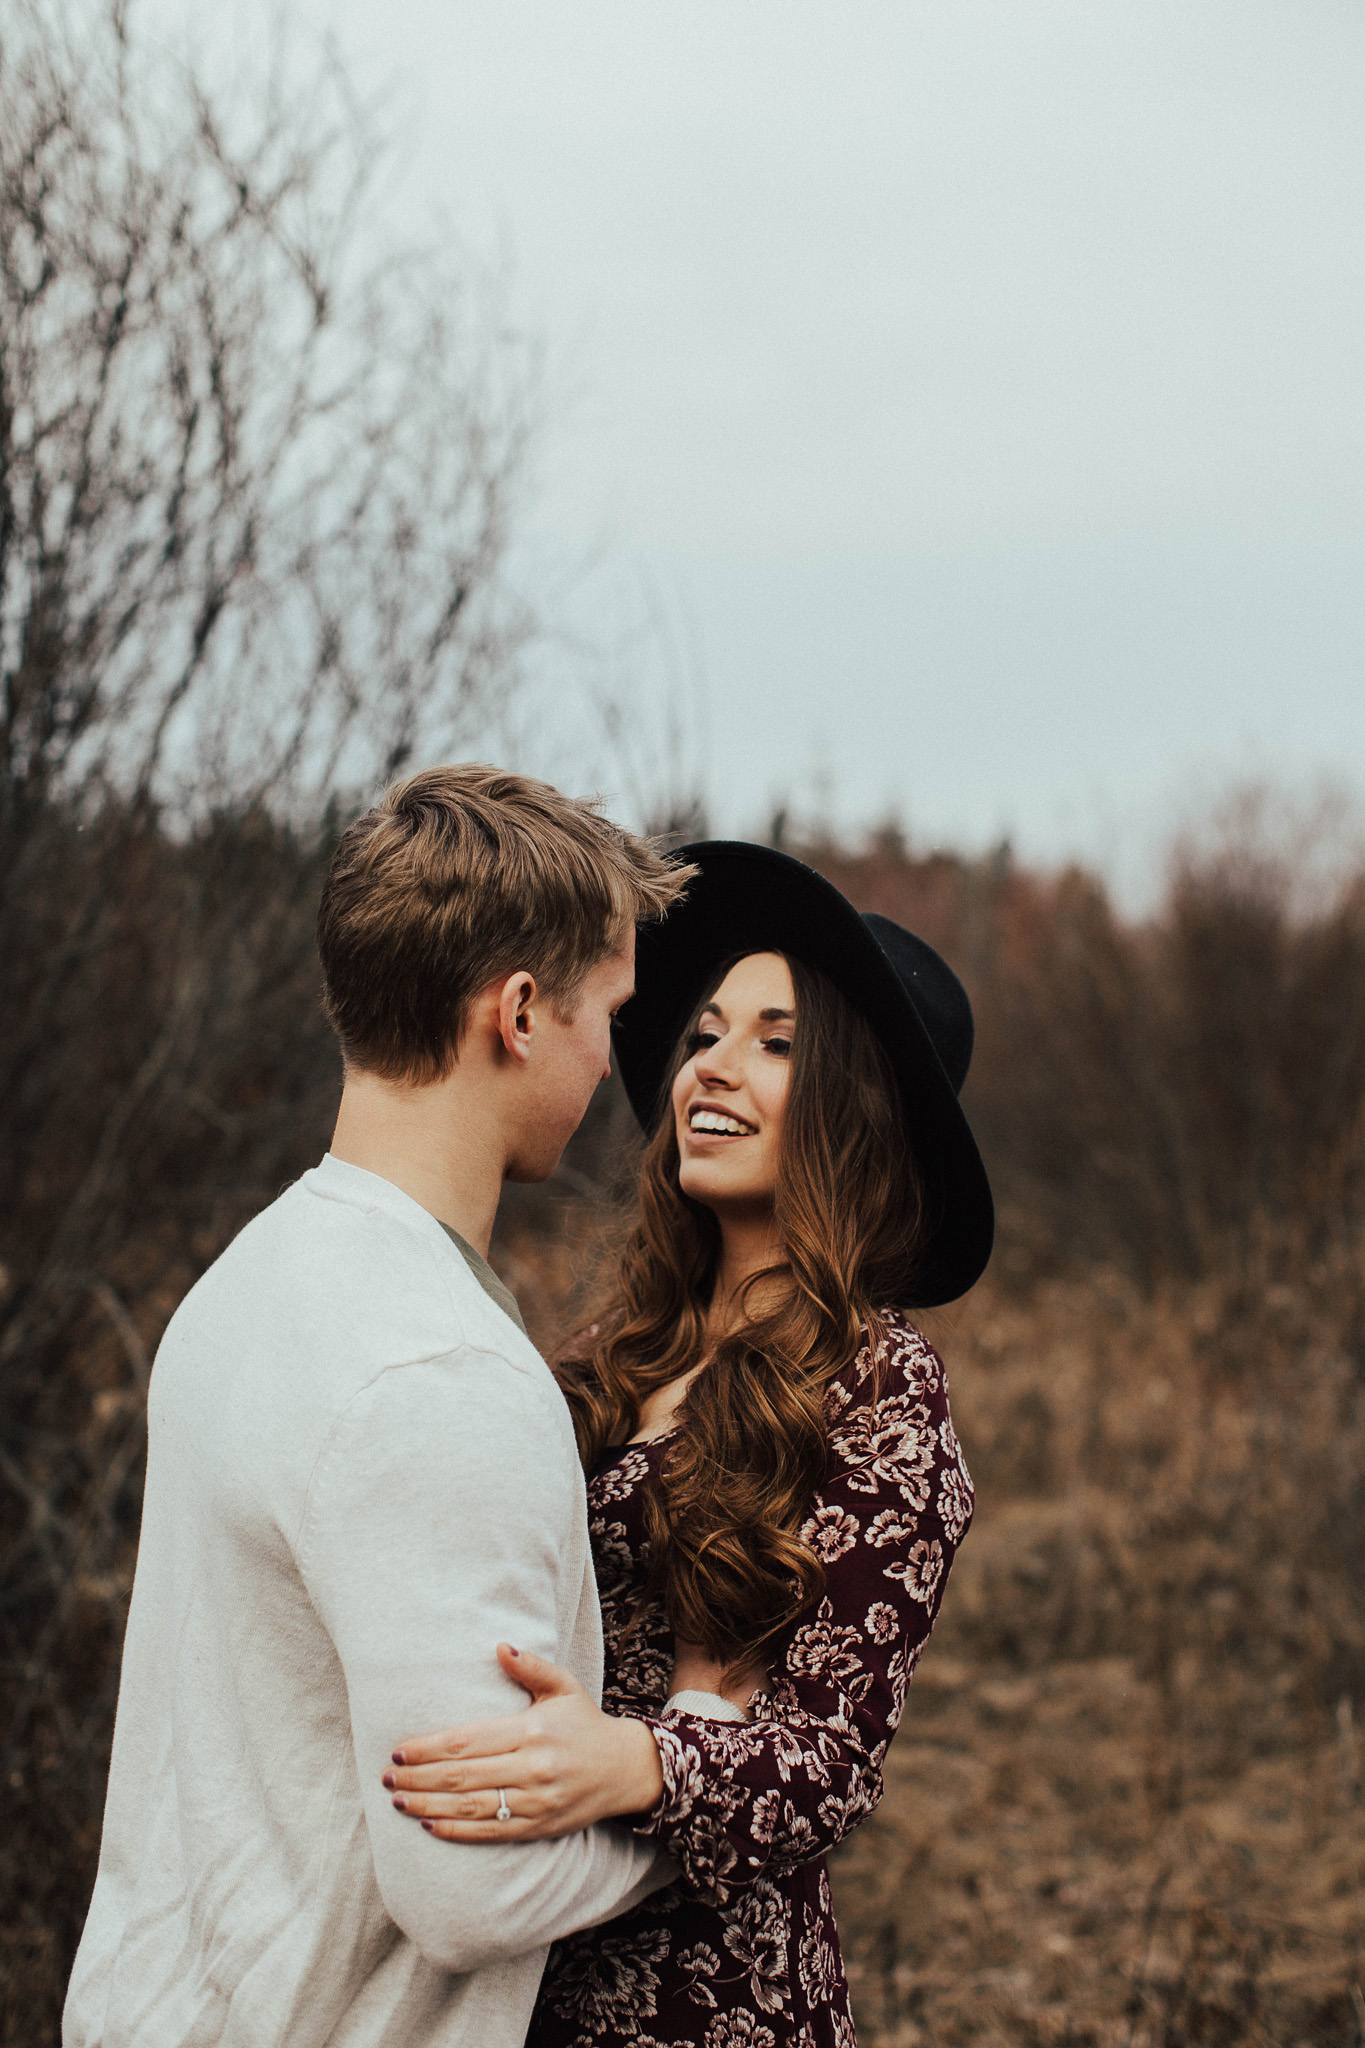 Edmonton Engagement Photographer - Michelle Larmand Photography - Mossy woods engagement session002